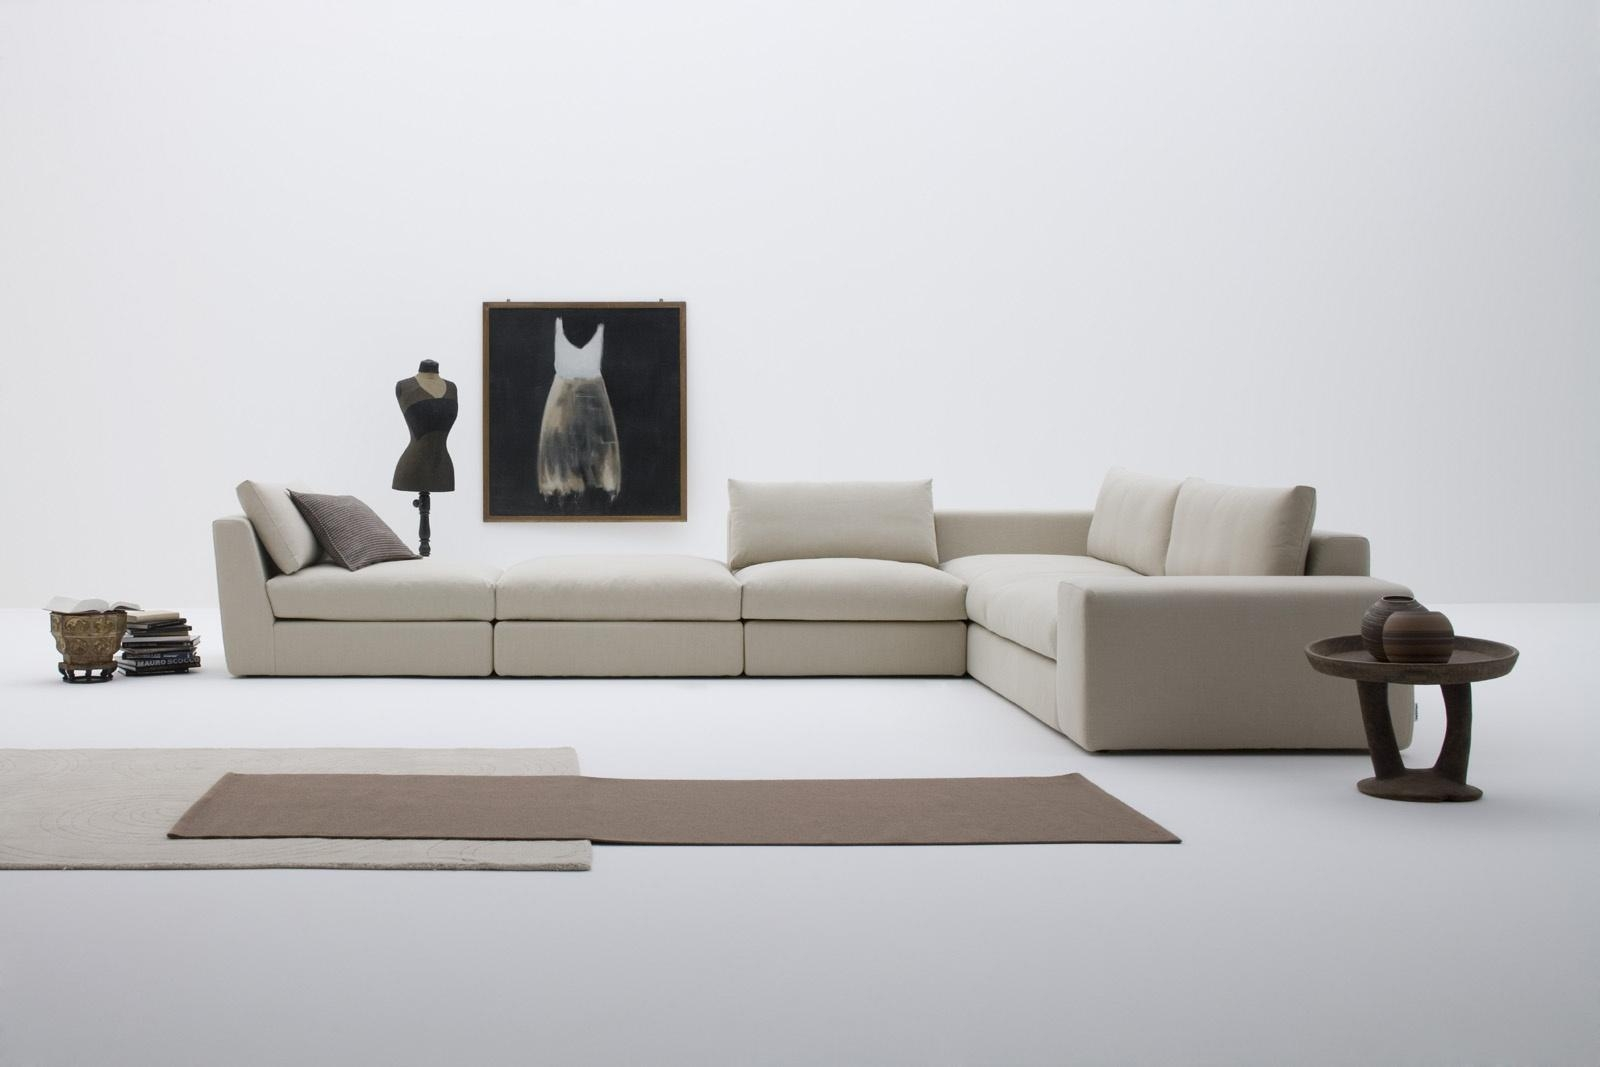 Modular Sofa Newport, Alberta Salotti – Luxury Furniture Mr With Newport Sofas (View 6 of 20)